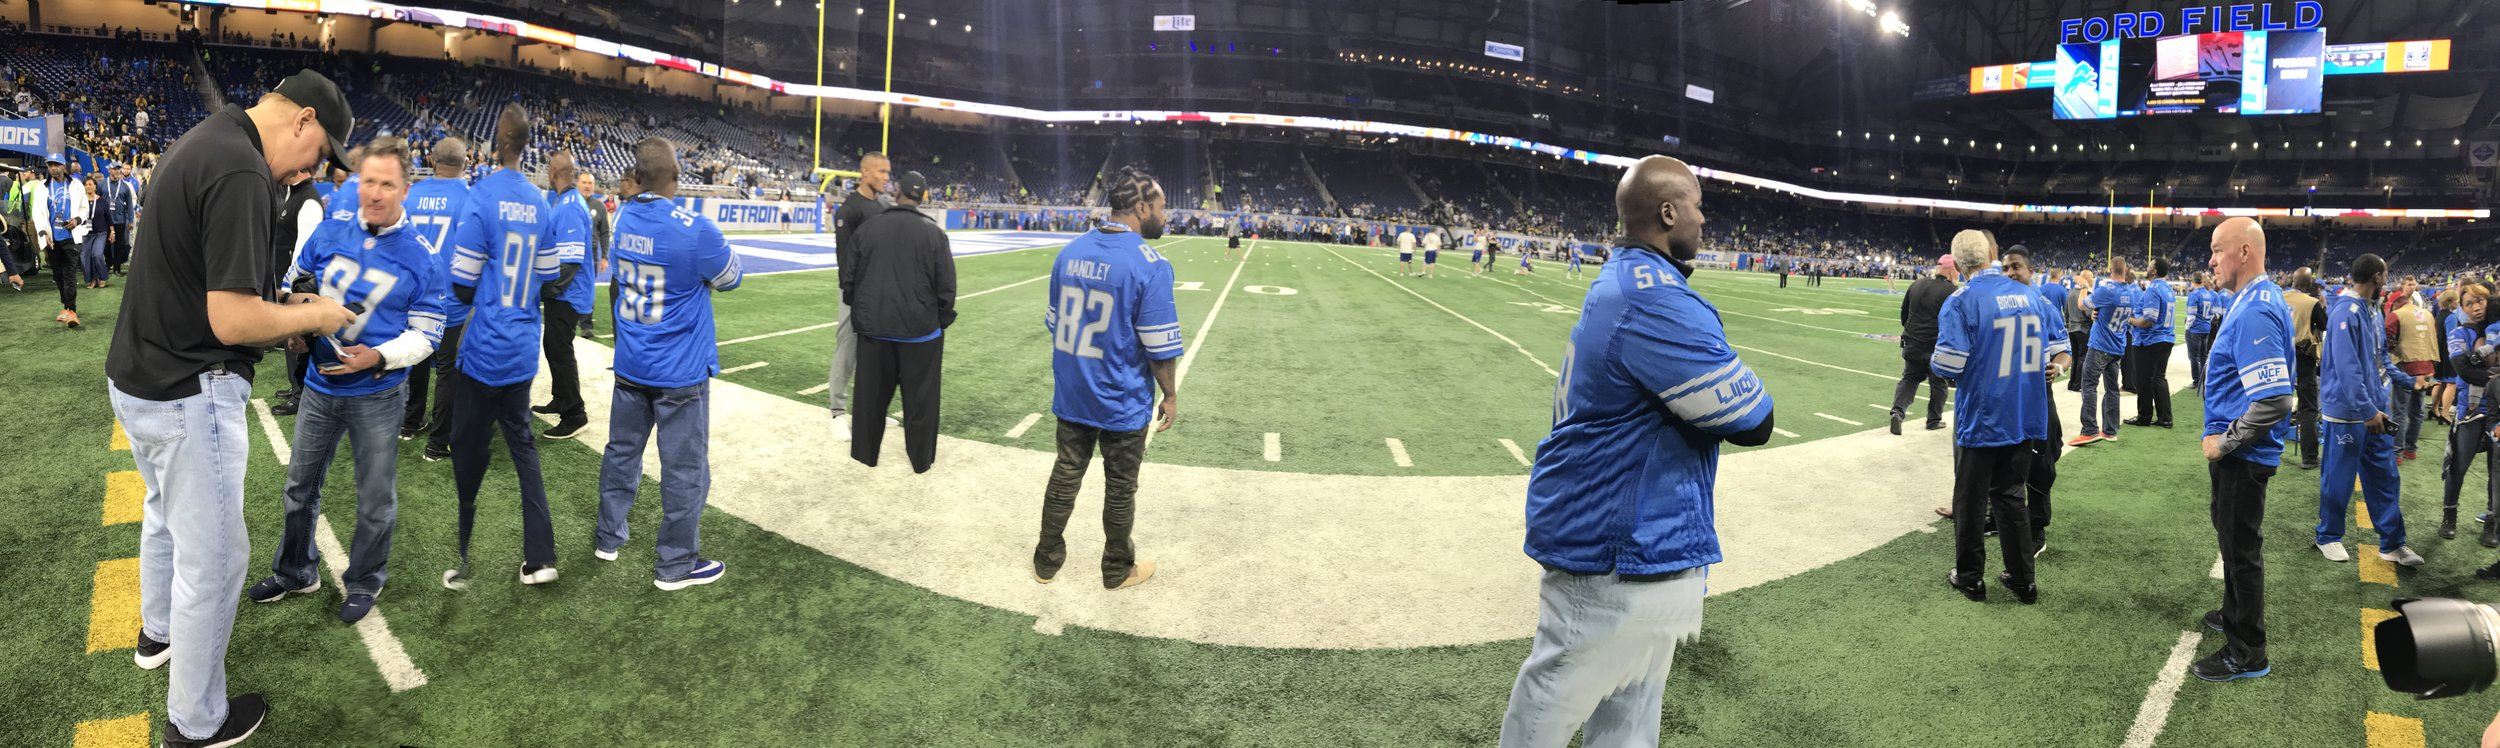 It gets crowded on the sidelines